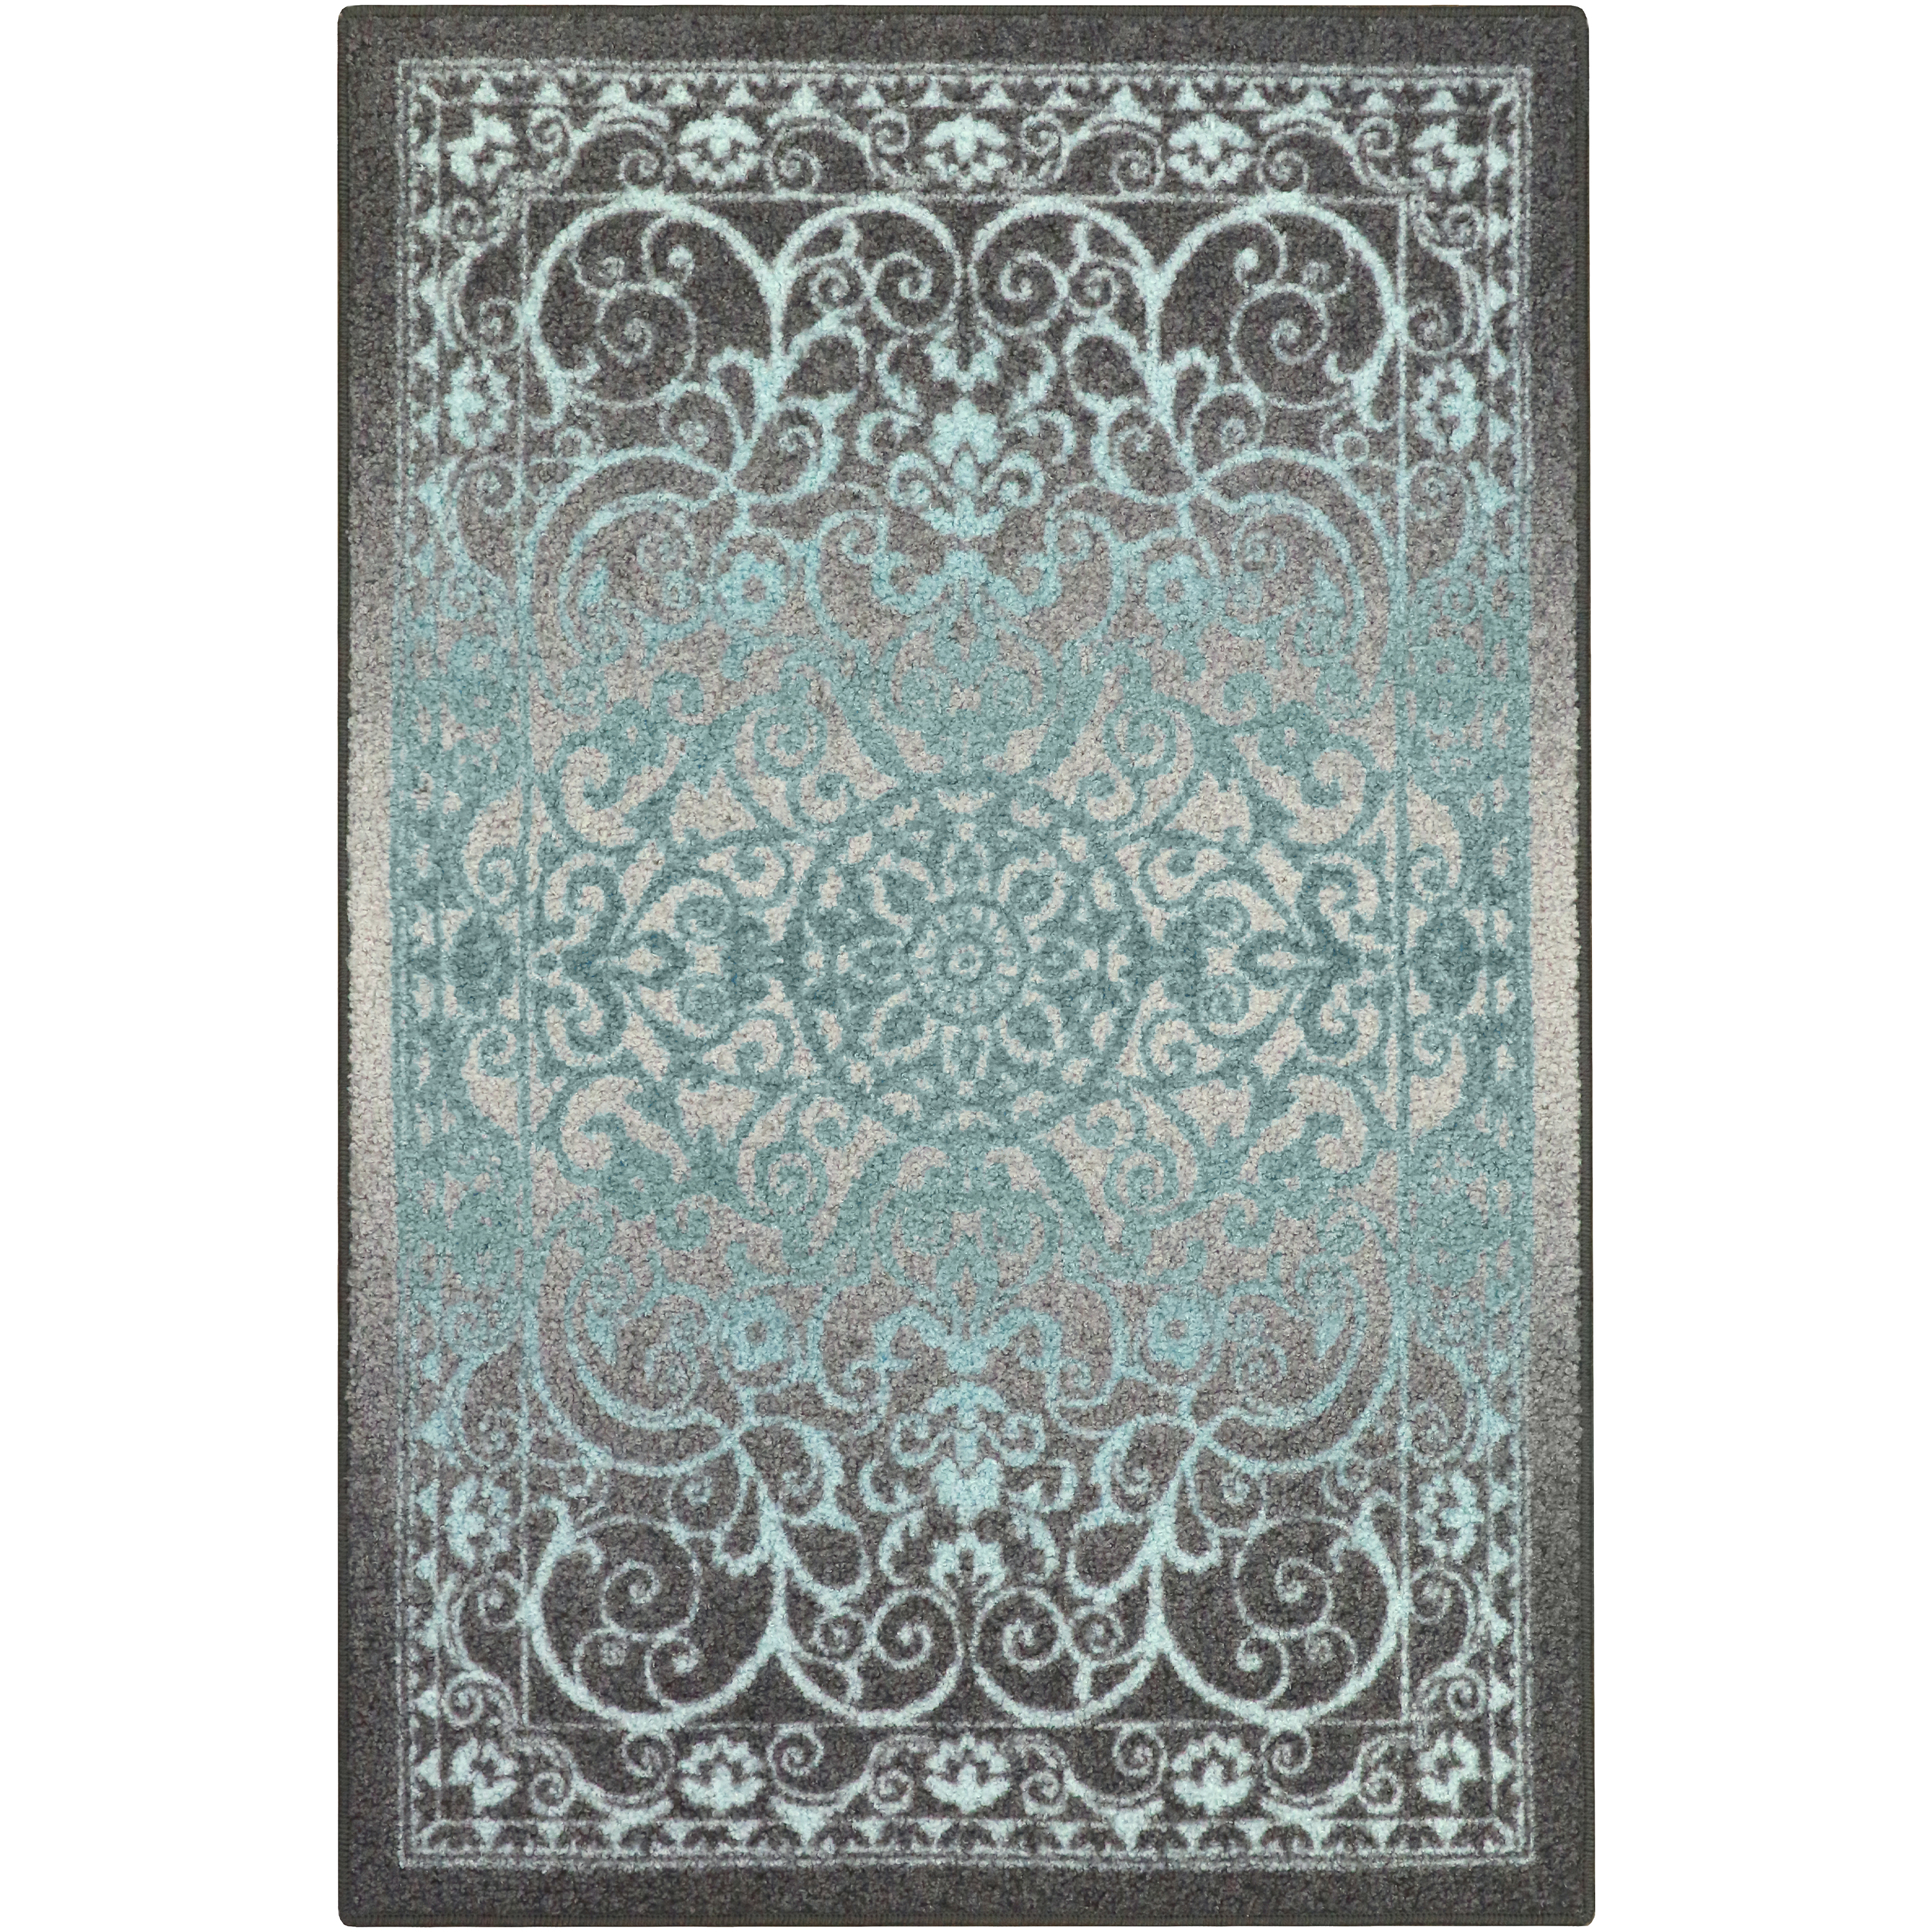 Turquoise Runner Rug: Turquoise Area Rugs 5 X 7 Gray Vintage Damask Scroll